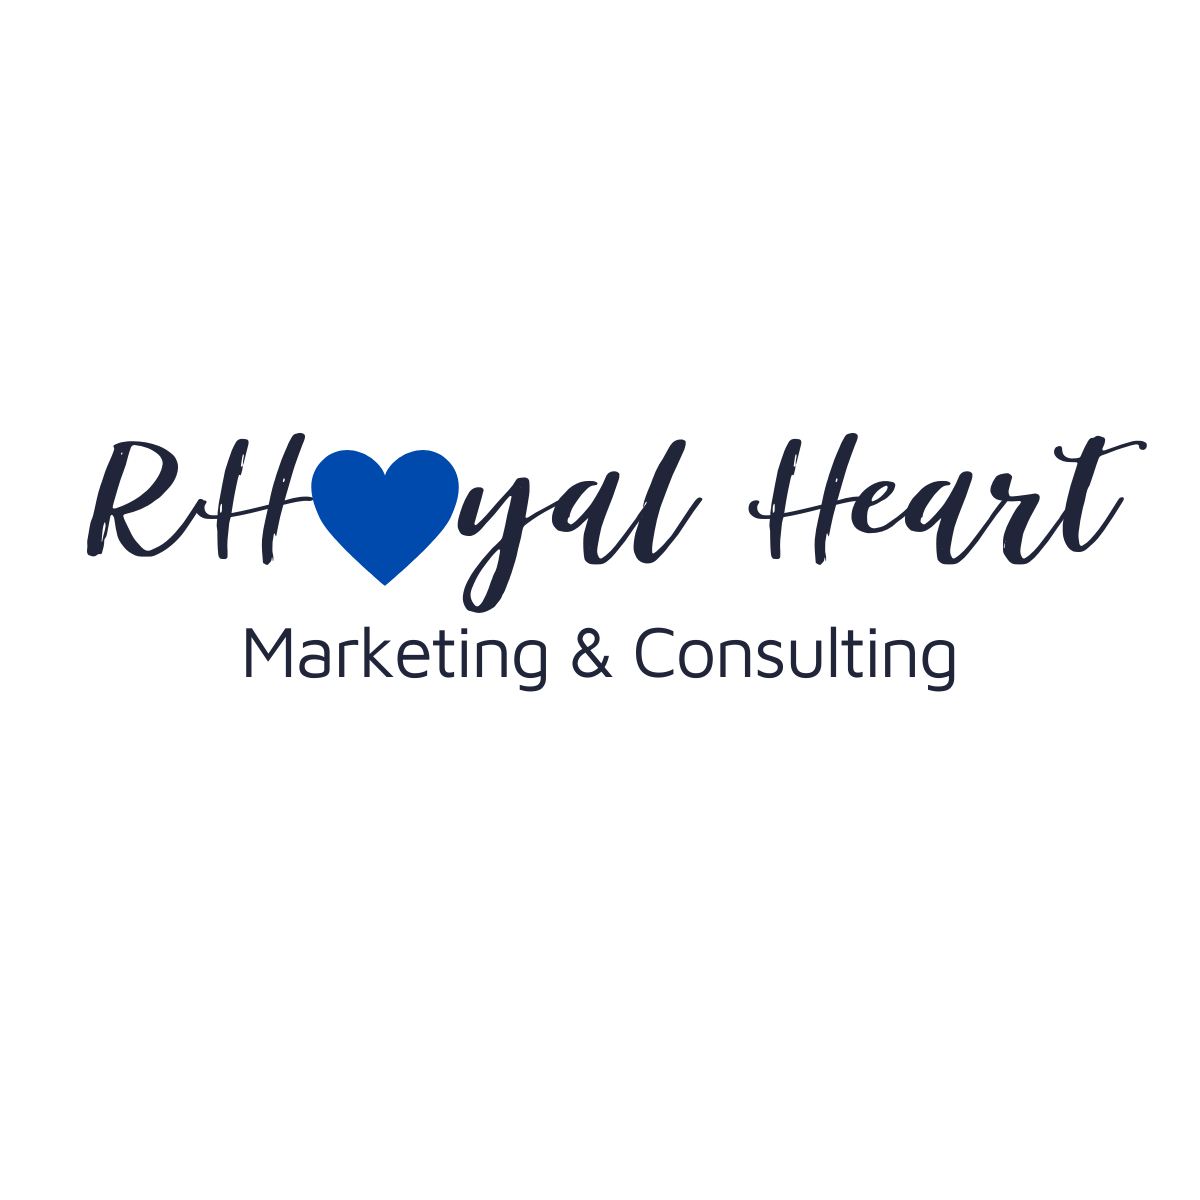 RHOyal Heart logo